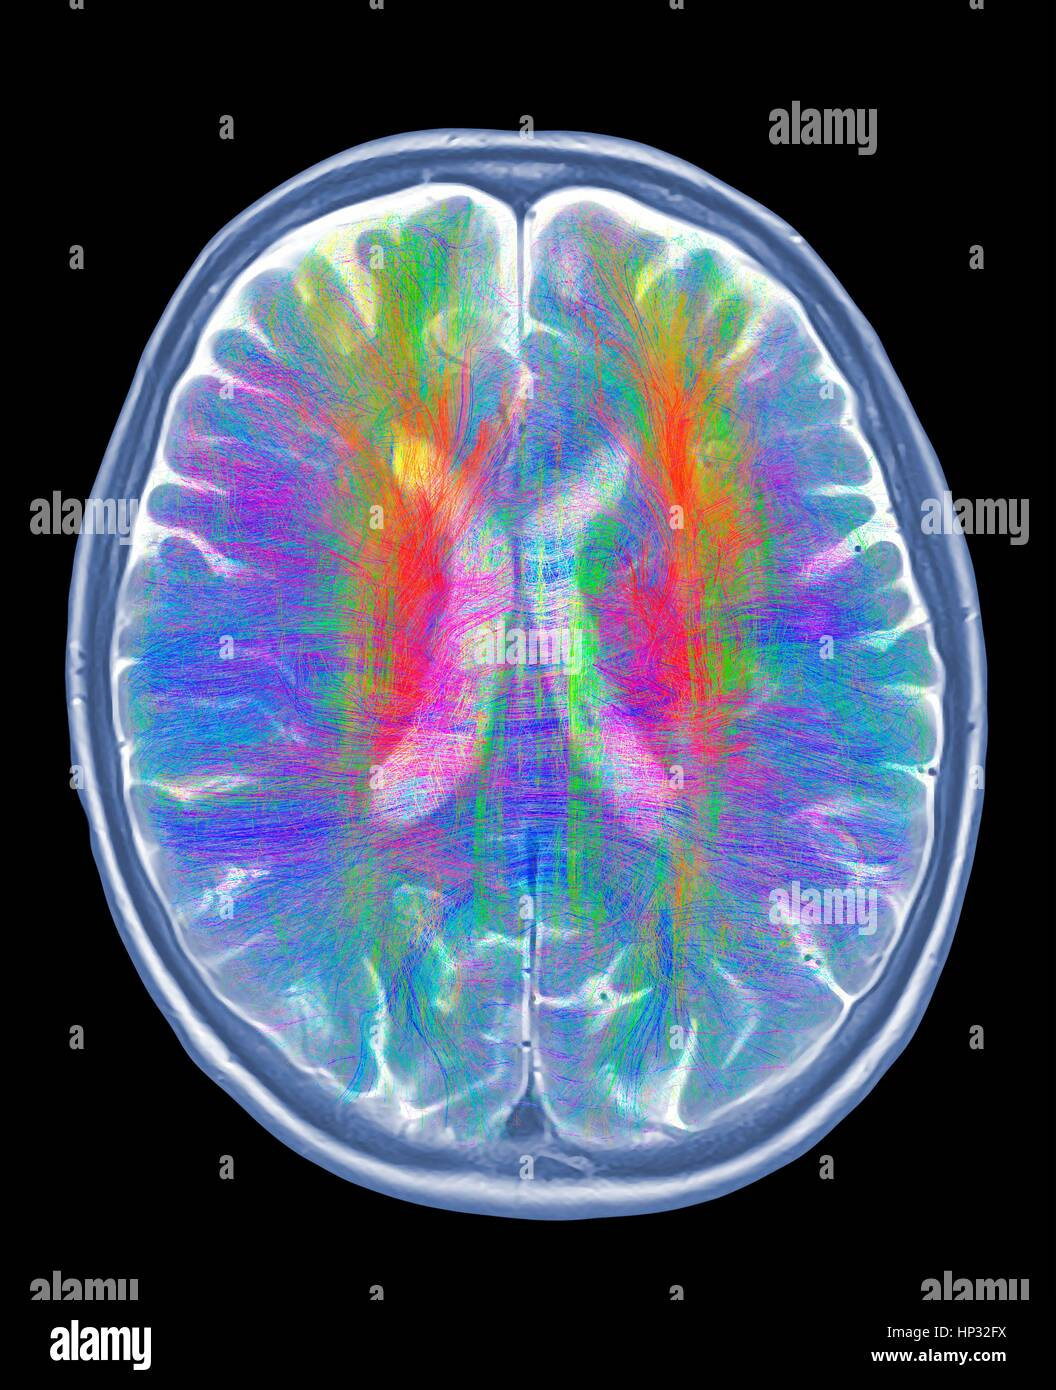 Computer artwork of MRI top view of brain showing white matter fibres.Coloured 3D diffusion spectral imaging (DSI) - Stock Image